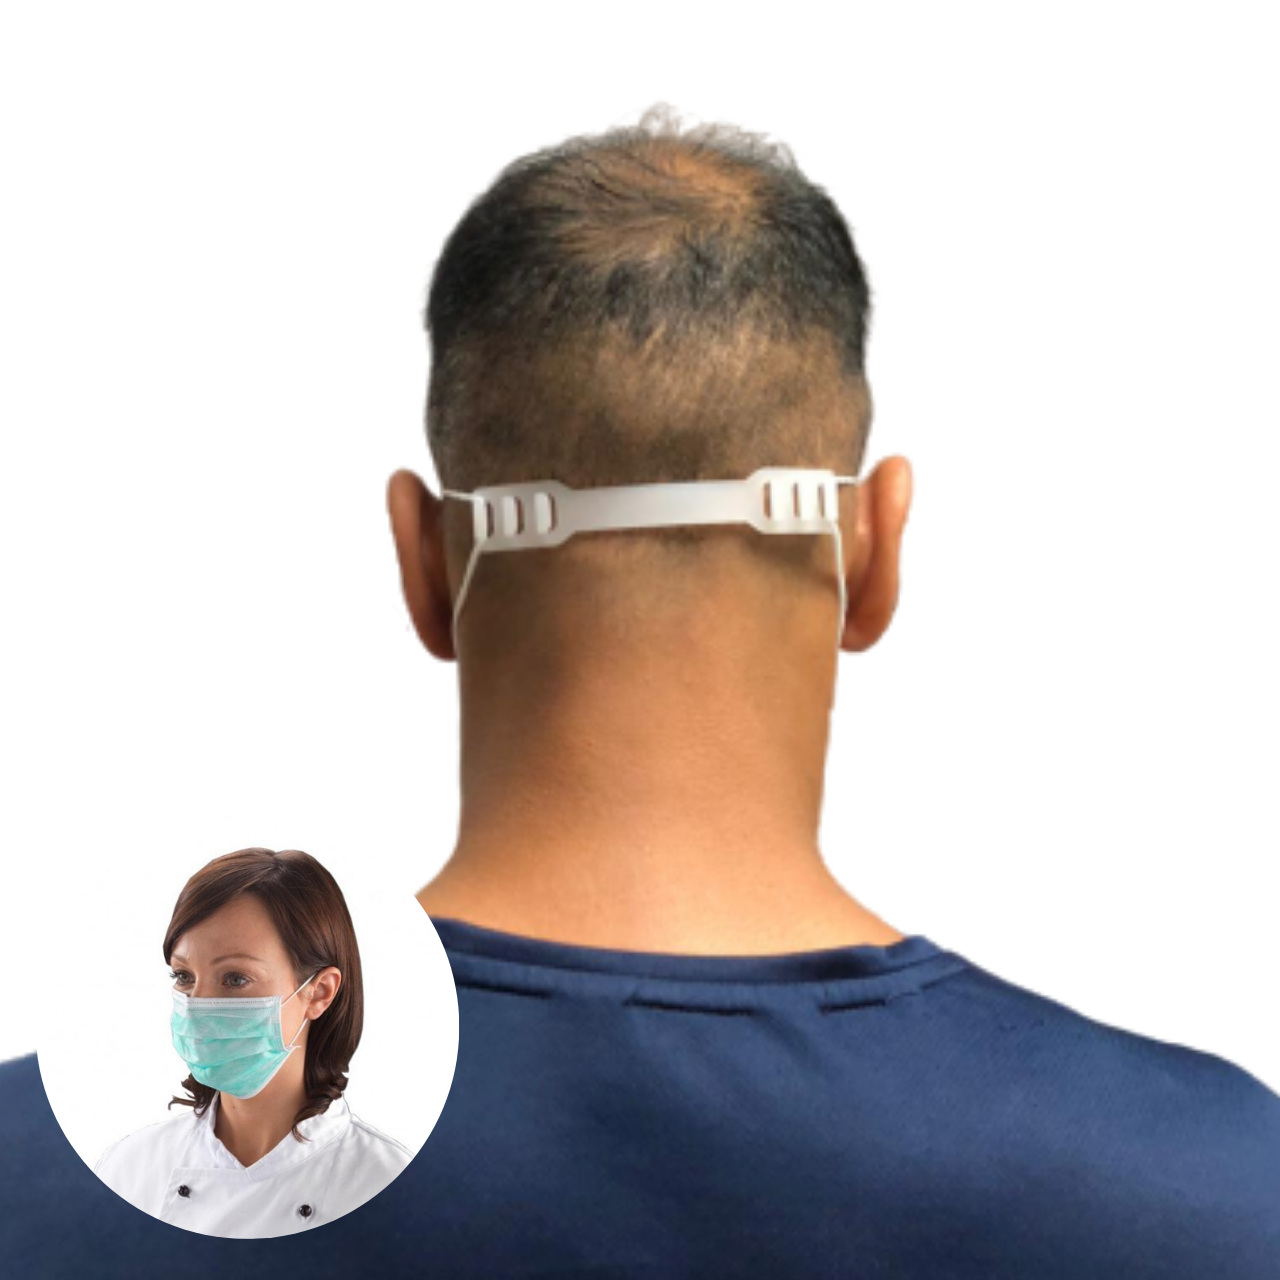 Generise Adjustable Face Mask Support Strap, Work Safety Protective Equipment by Generise